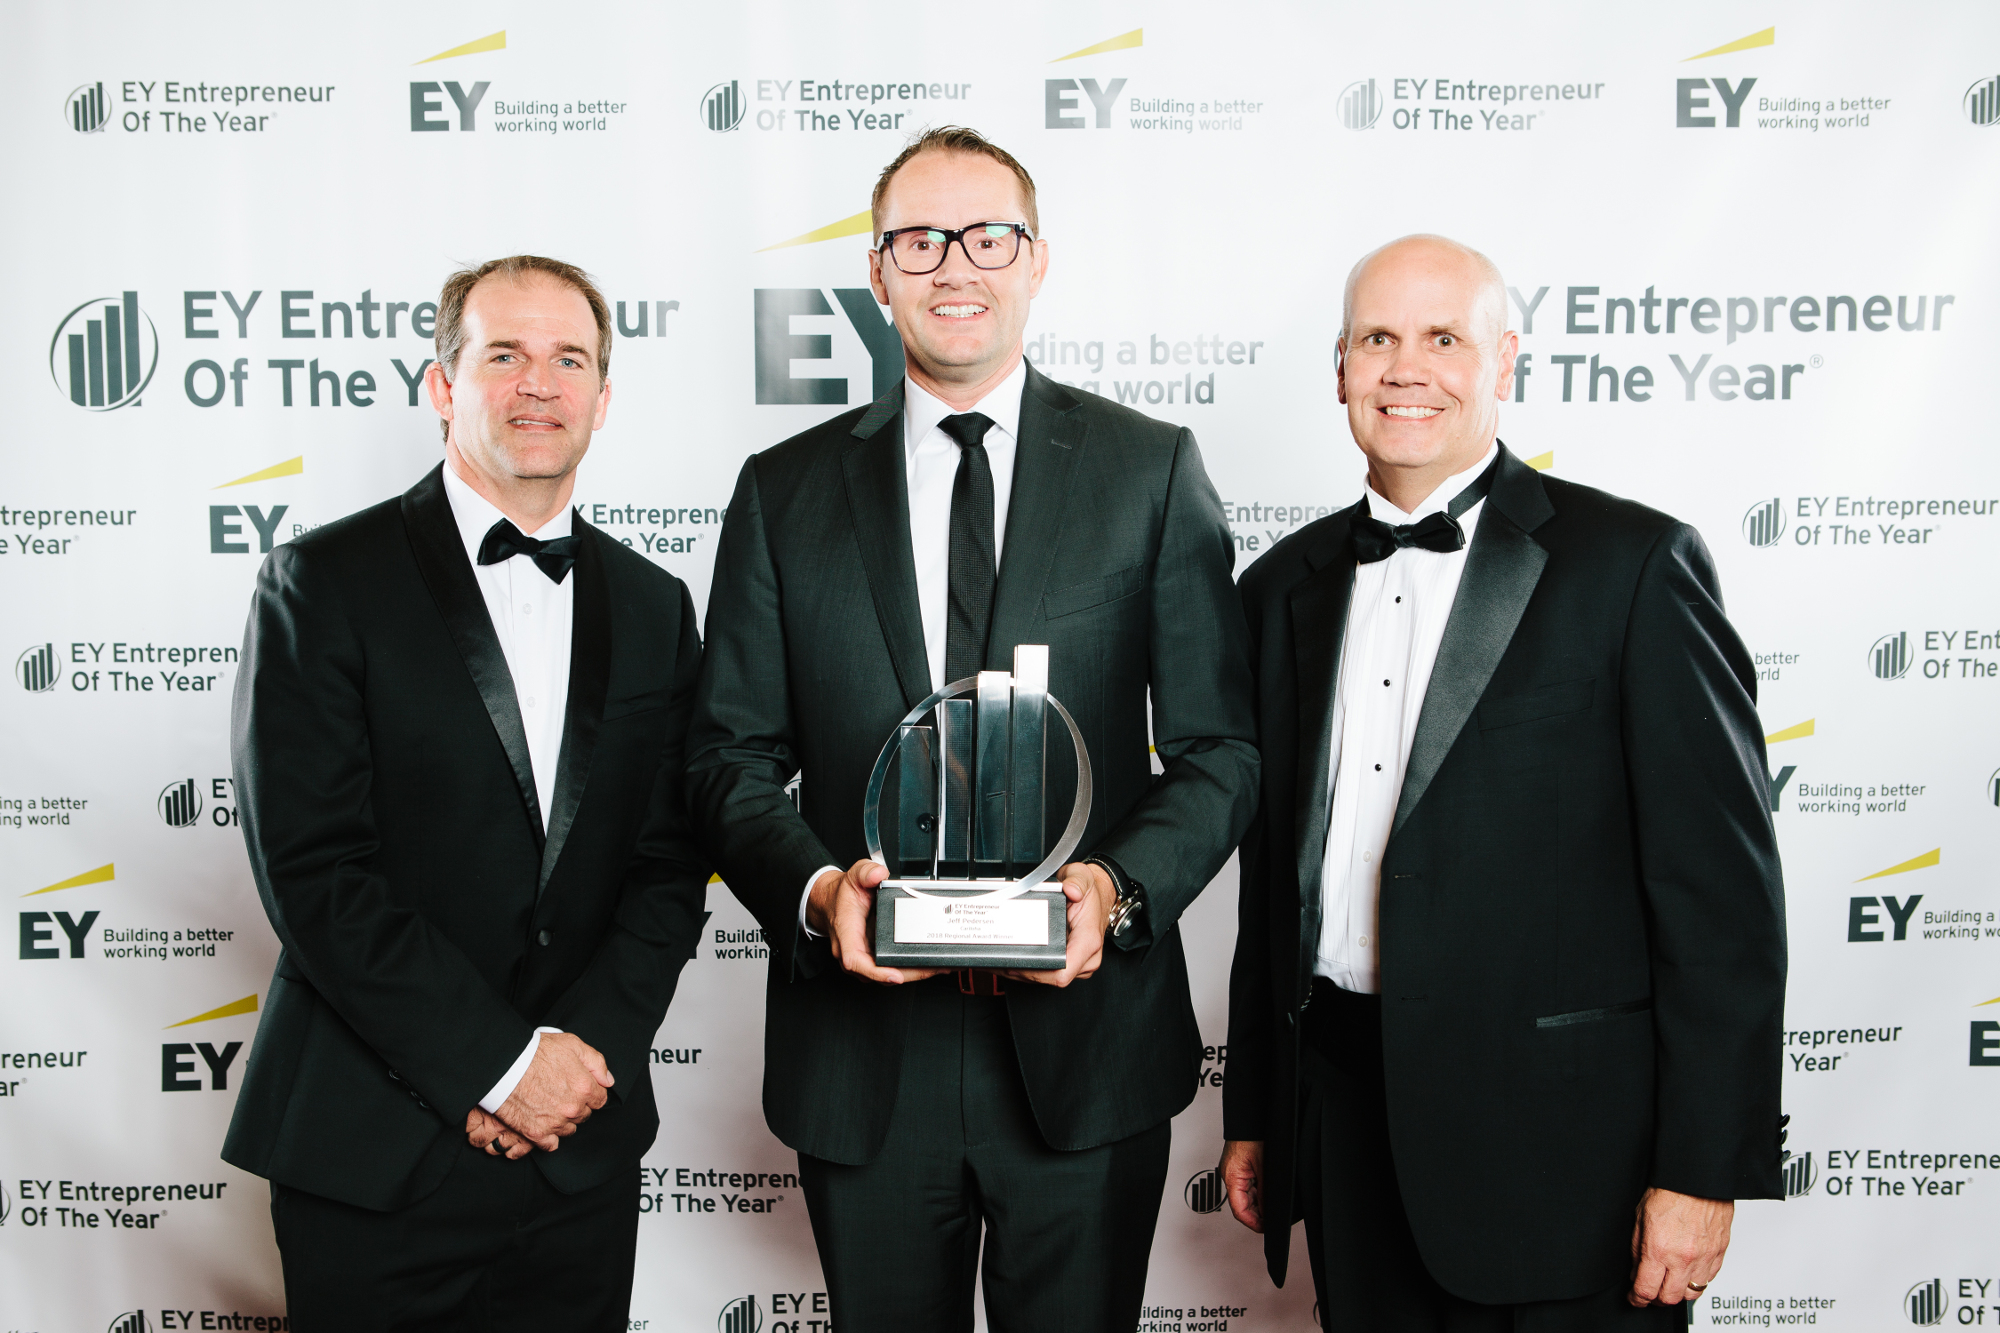 ernst-young-entrepreneur-of-the-year-jeff-pedersen-cariloha